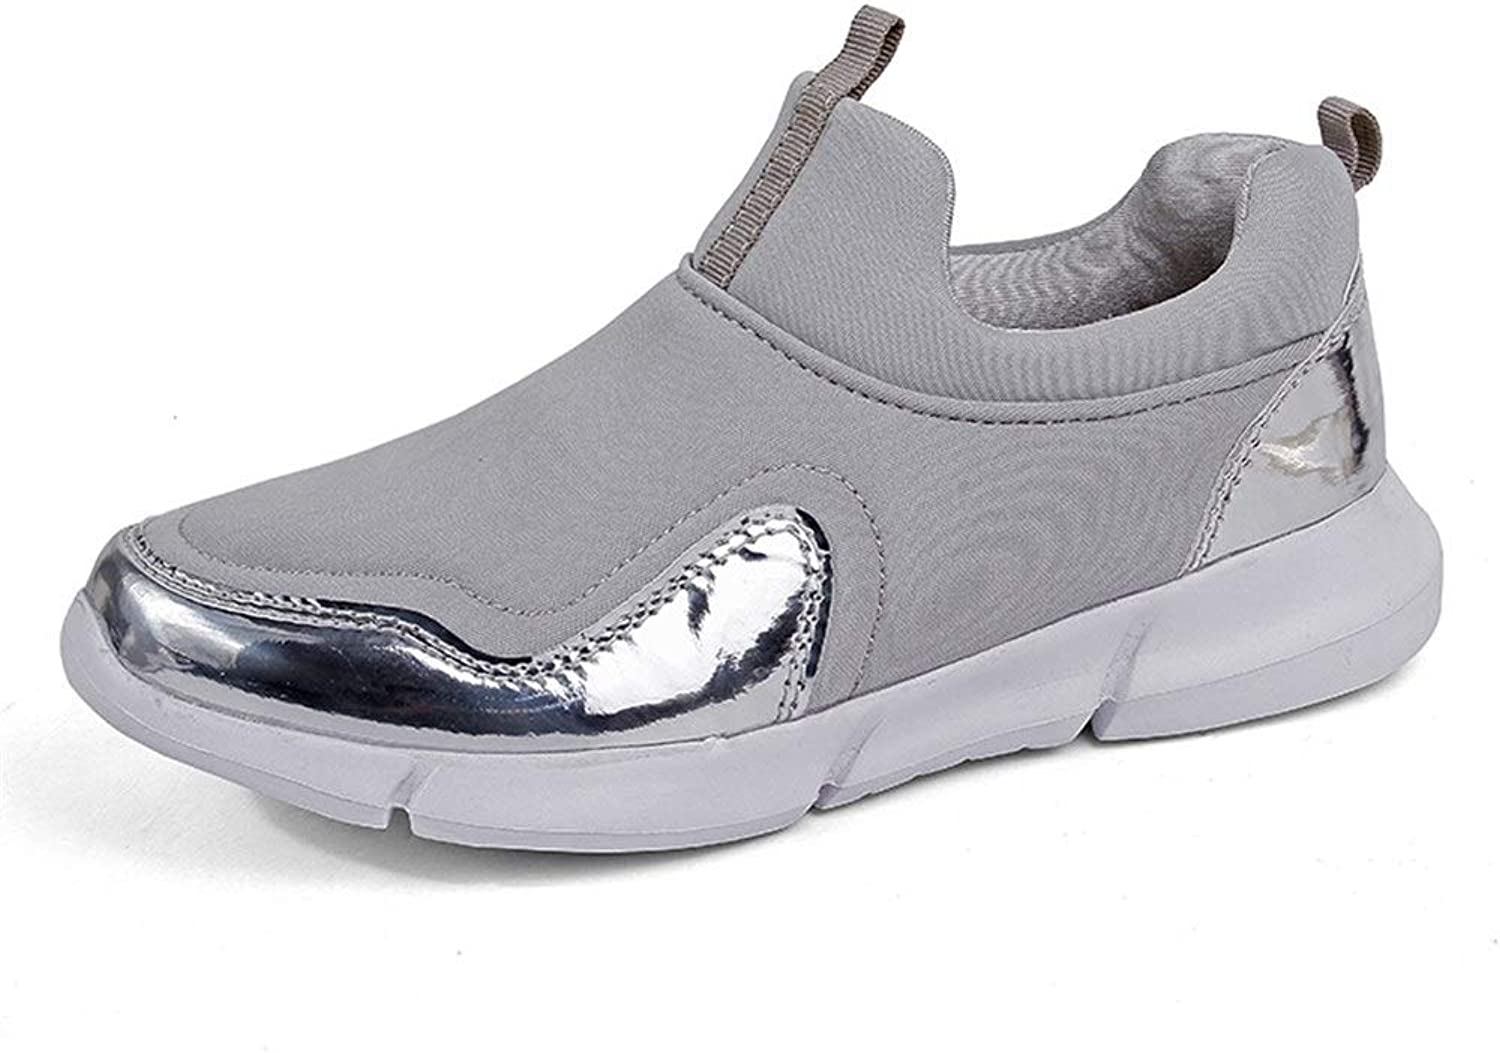 Weback Dress shoes for Men Athletic shoes for Men and Women Sports shoes Slip On Style Mesh and PU Patent Leather Height Increasing Insole